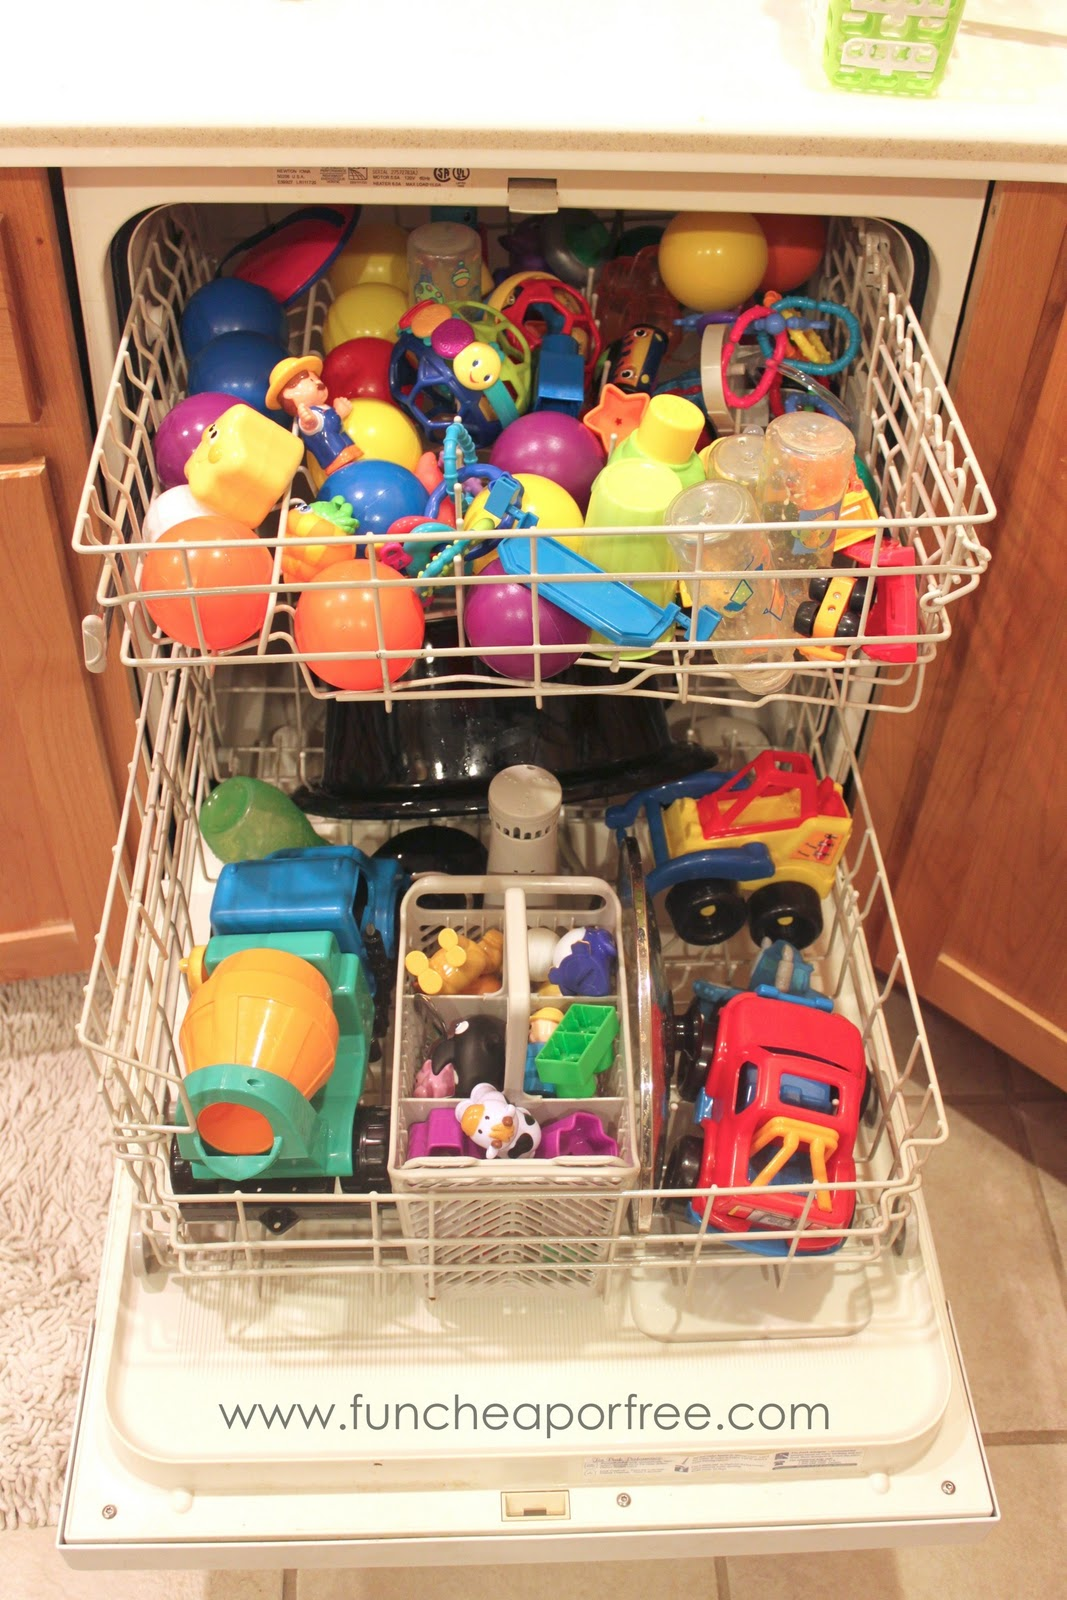 Toys in Dish Washer